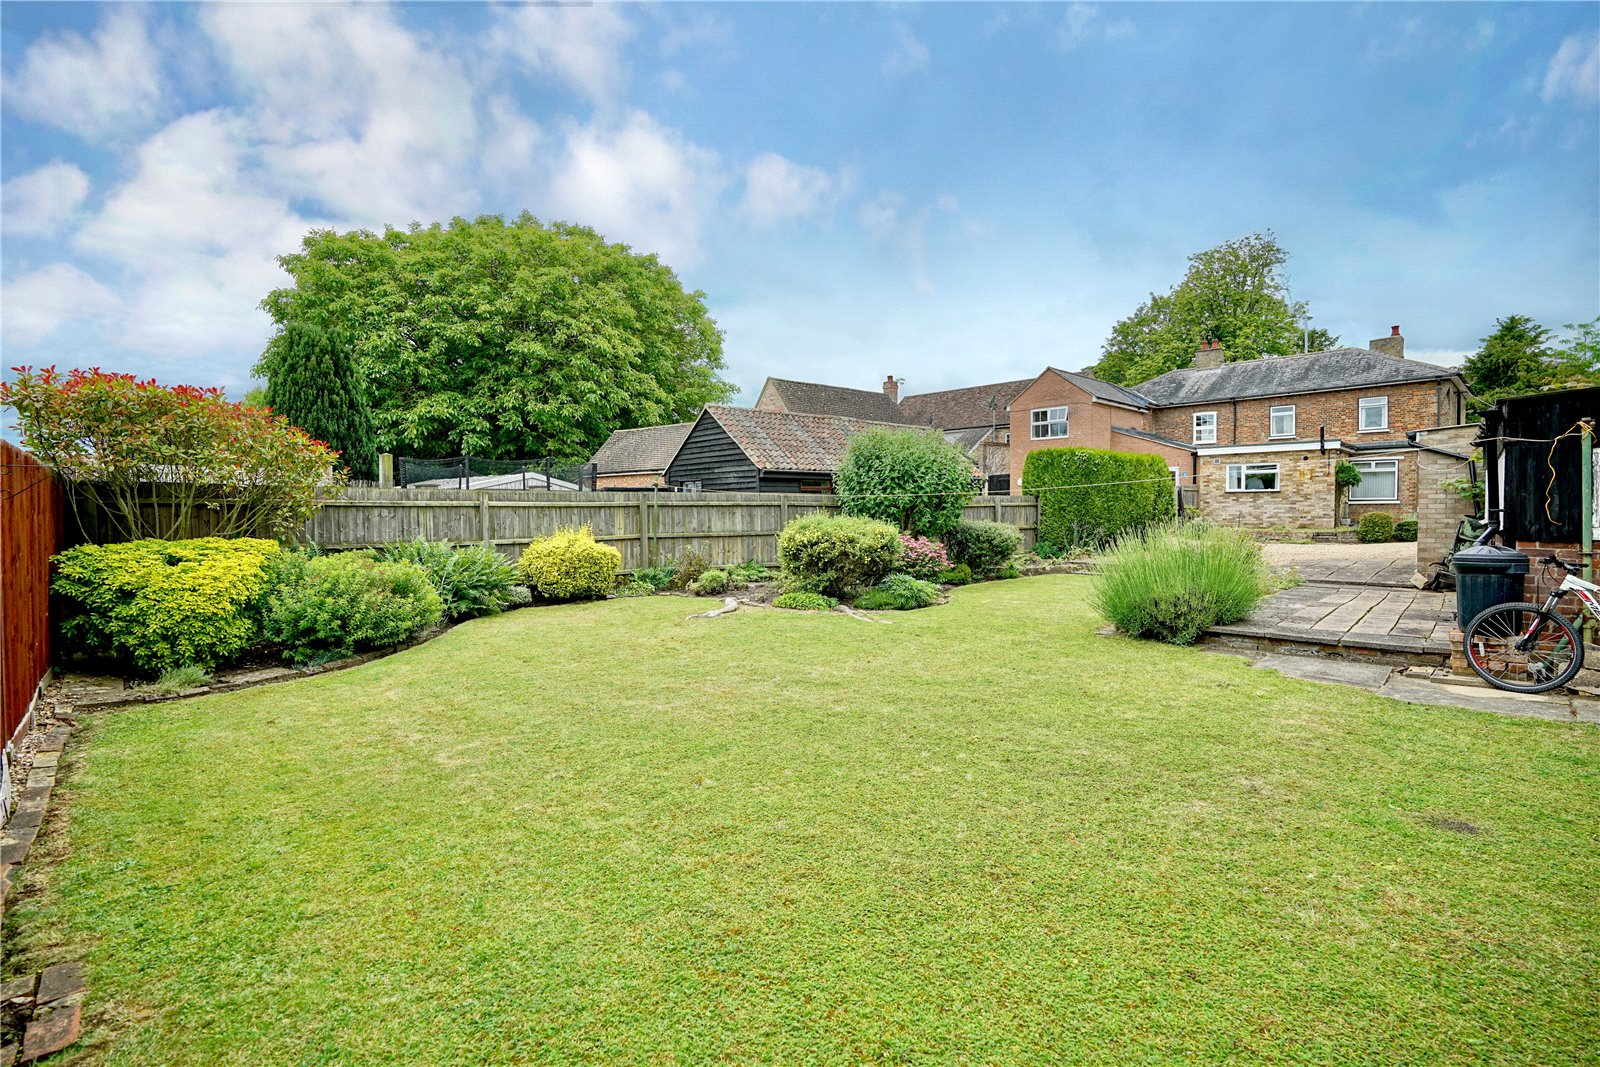 3 bed house for sale in Great North Road, Eaton Socon 6